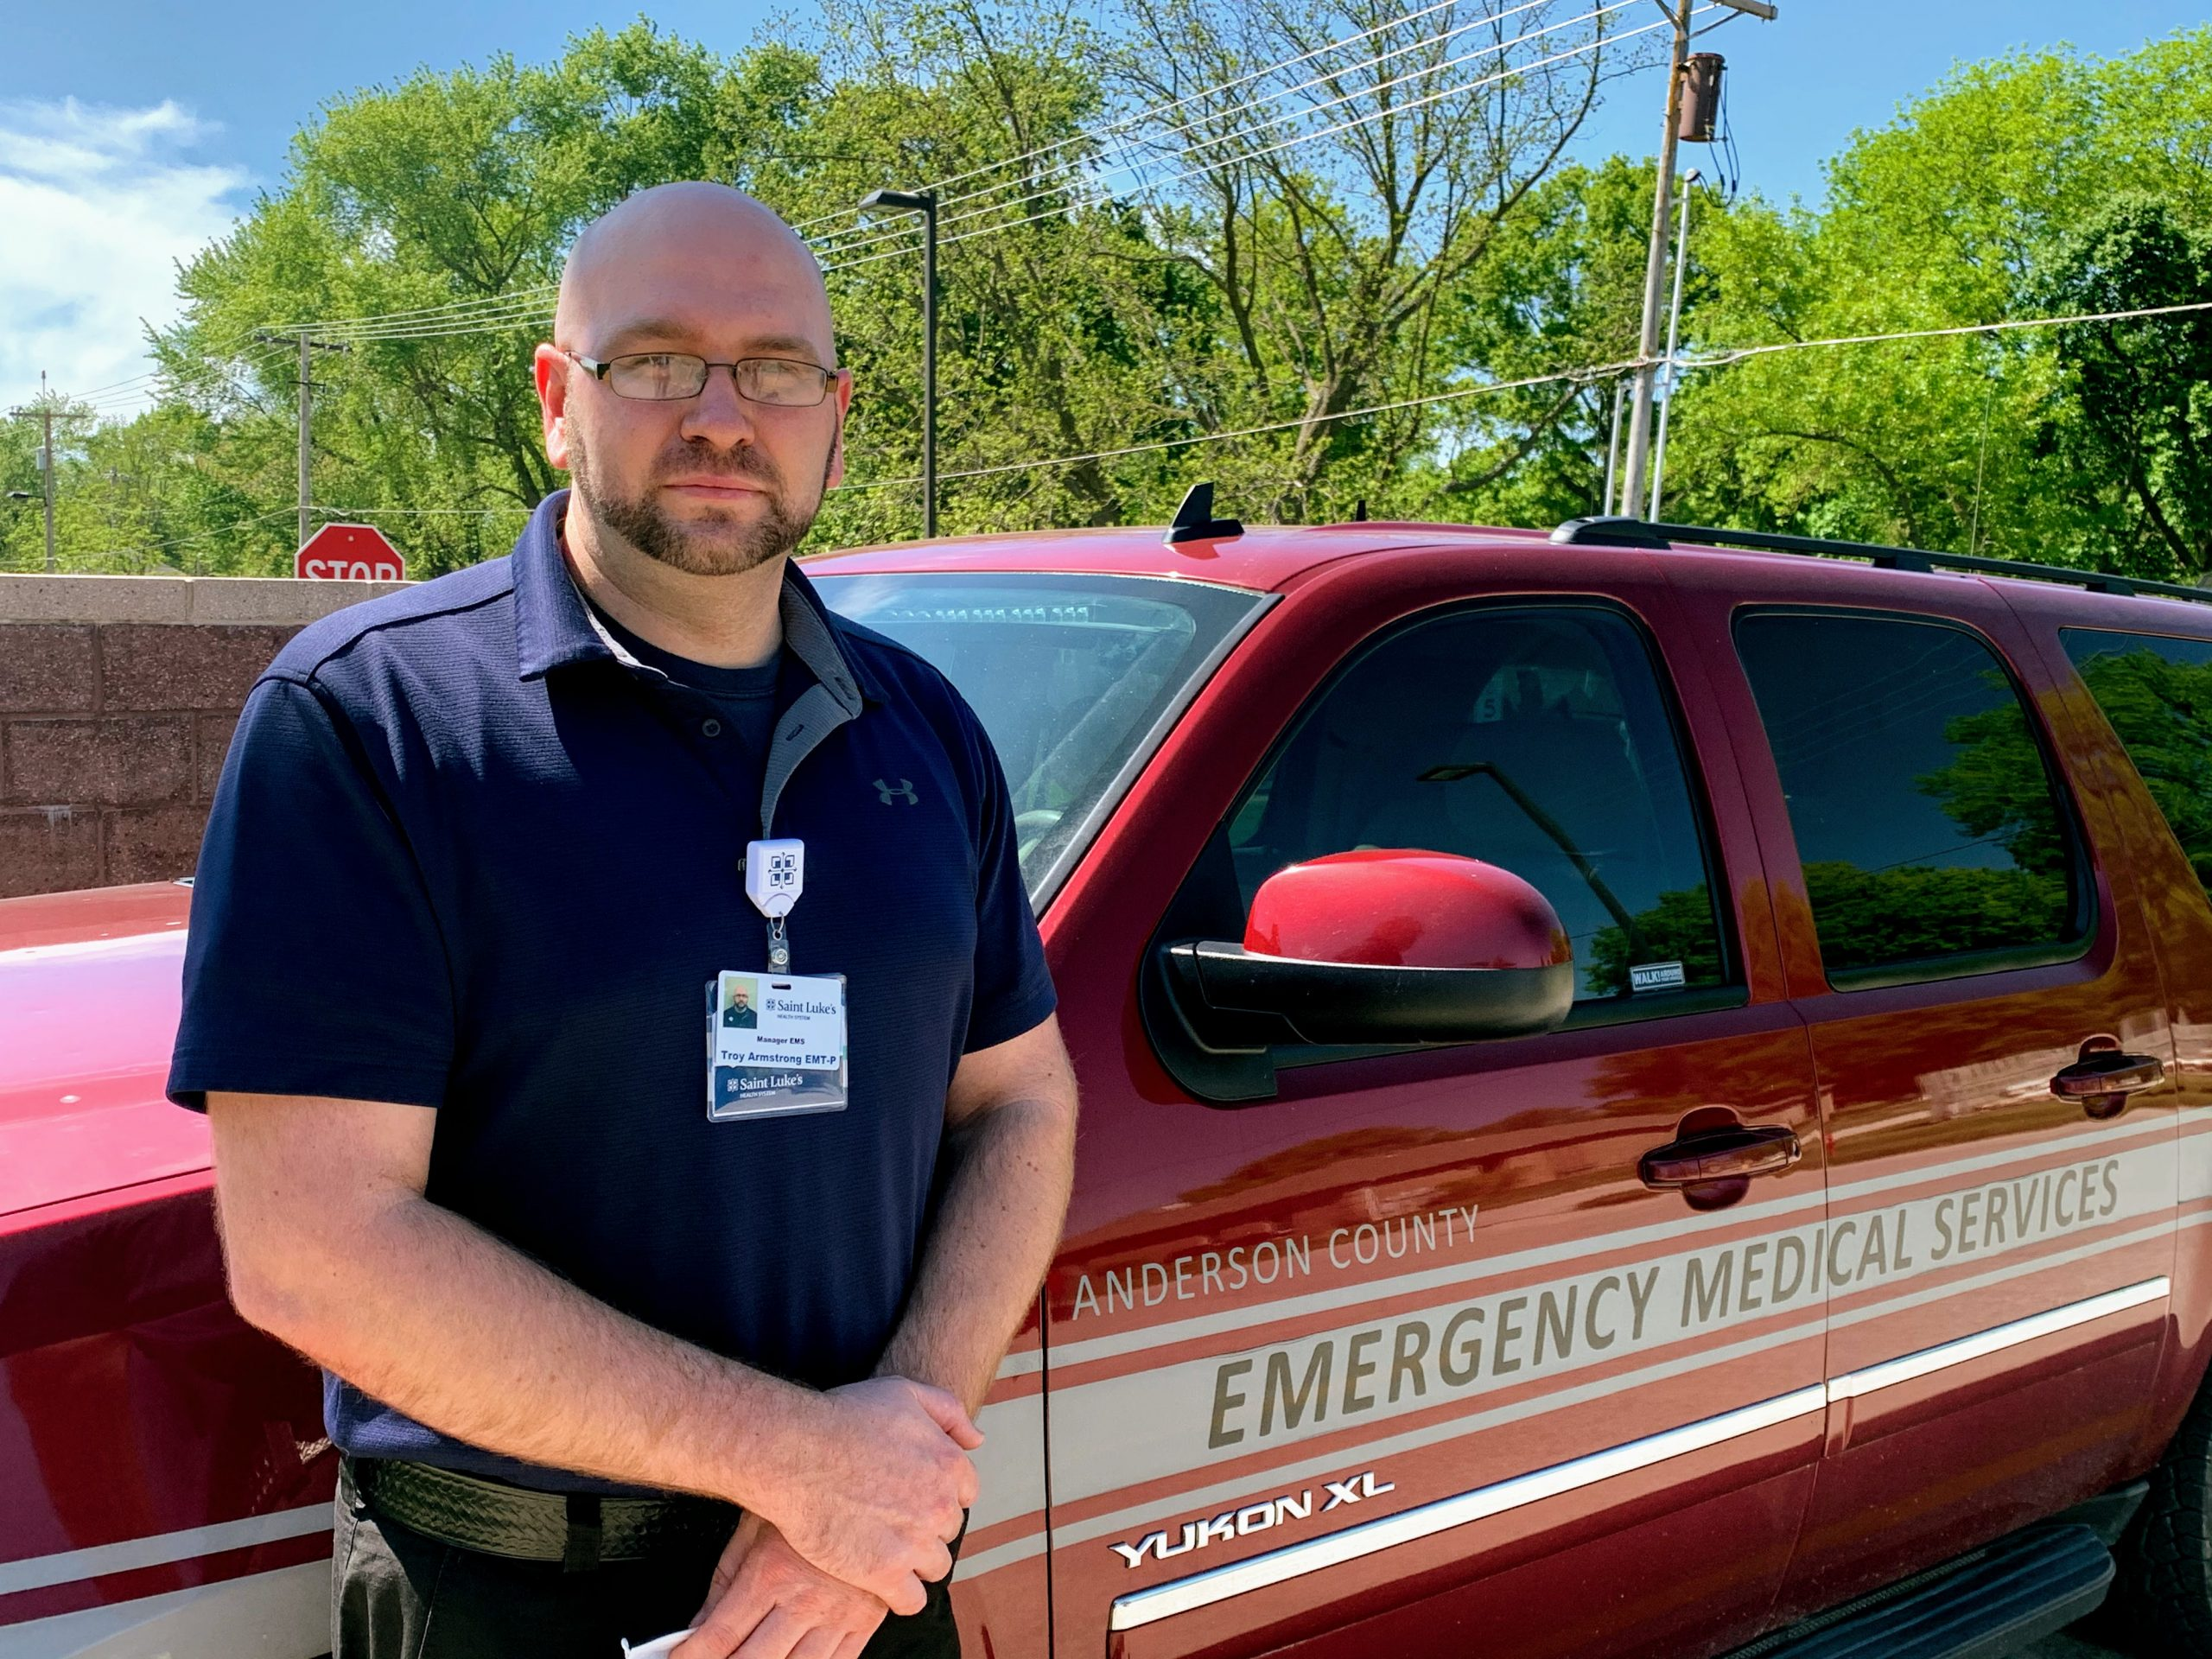 New county EMS head will aim at staffing, developing young talent for careers in emergency service disciplines